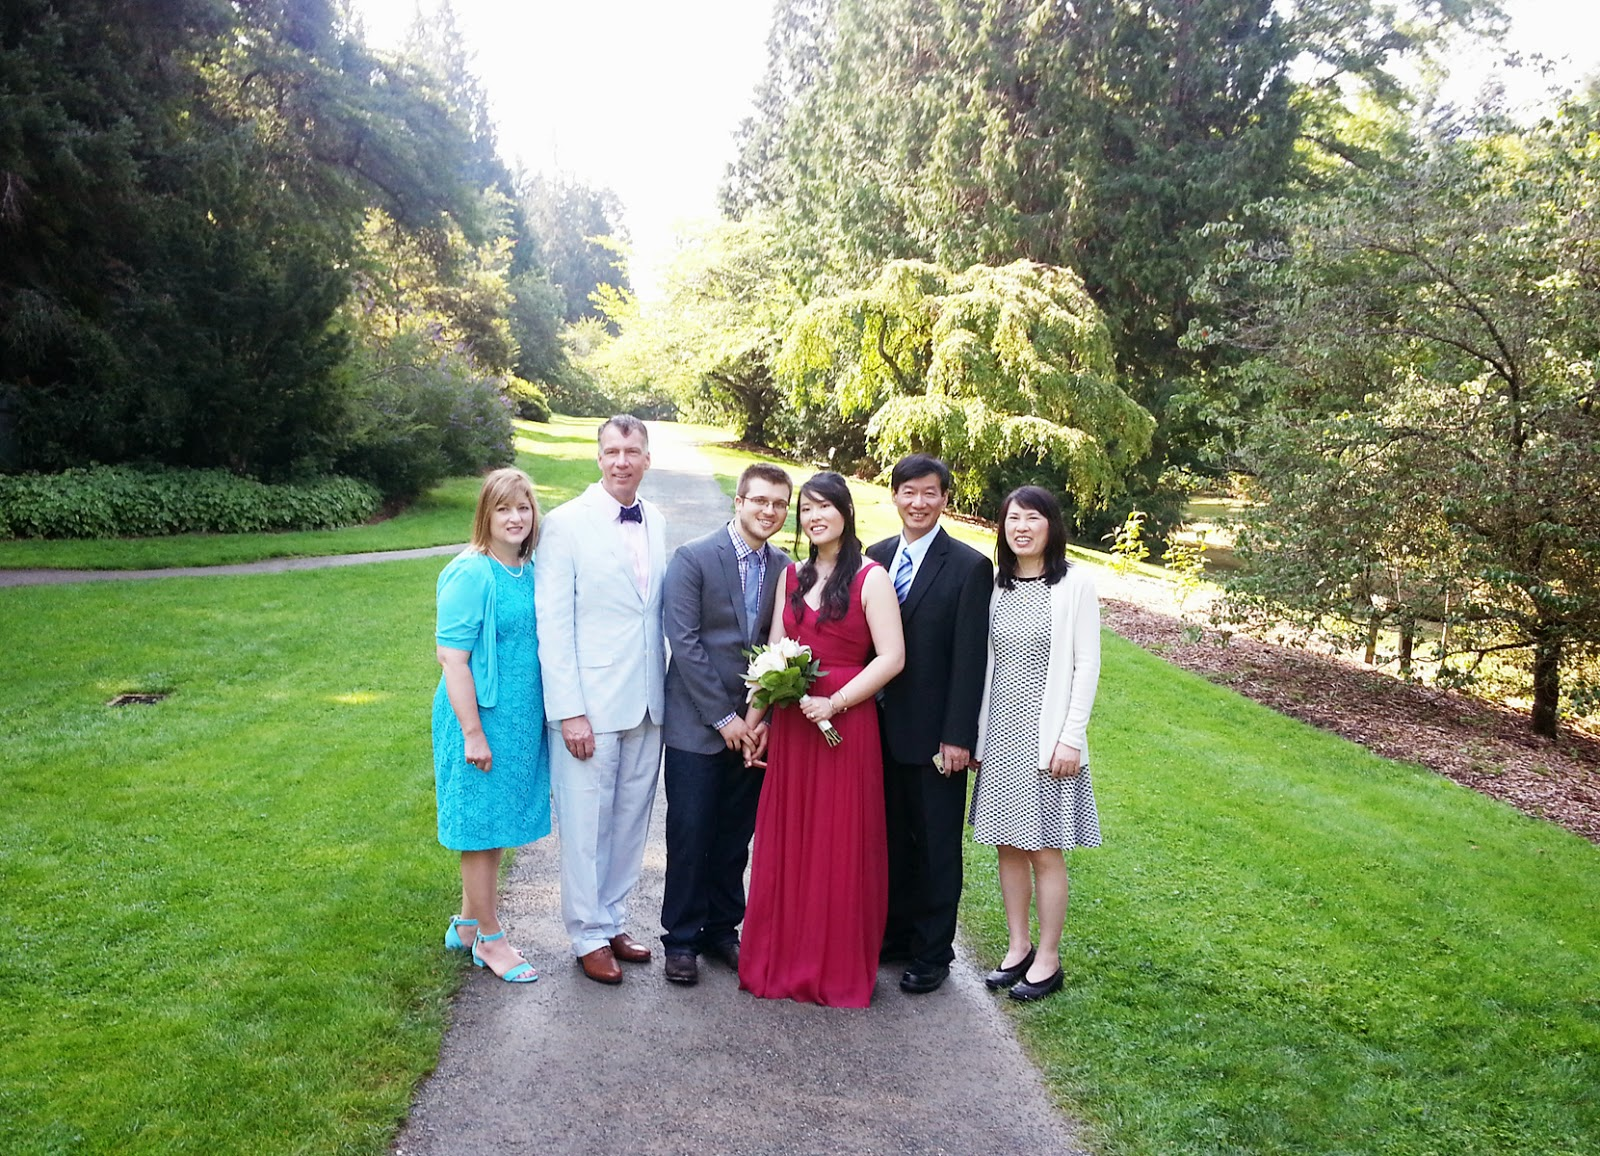 Sarah and Gene's wedding photo at the Washington Park Arboretum - Patricia Stimac, Seattle Wedding Officiant